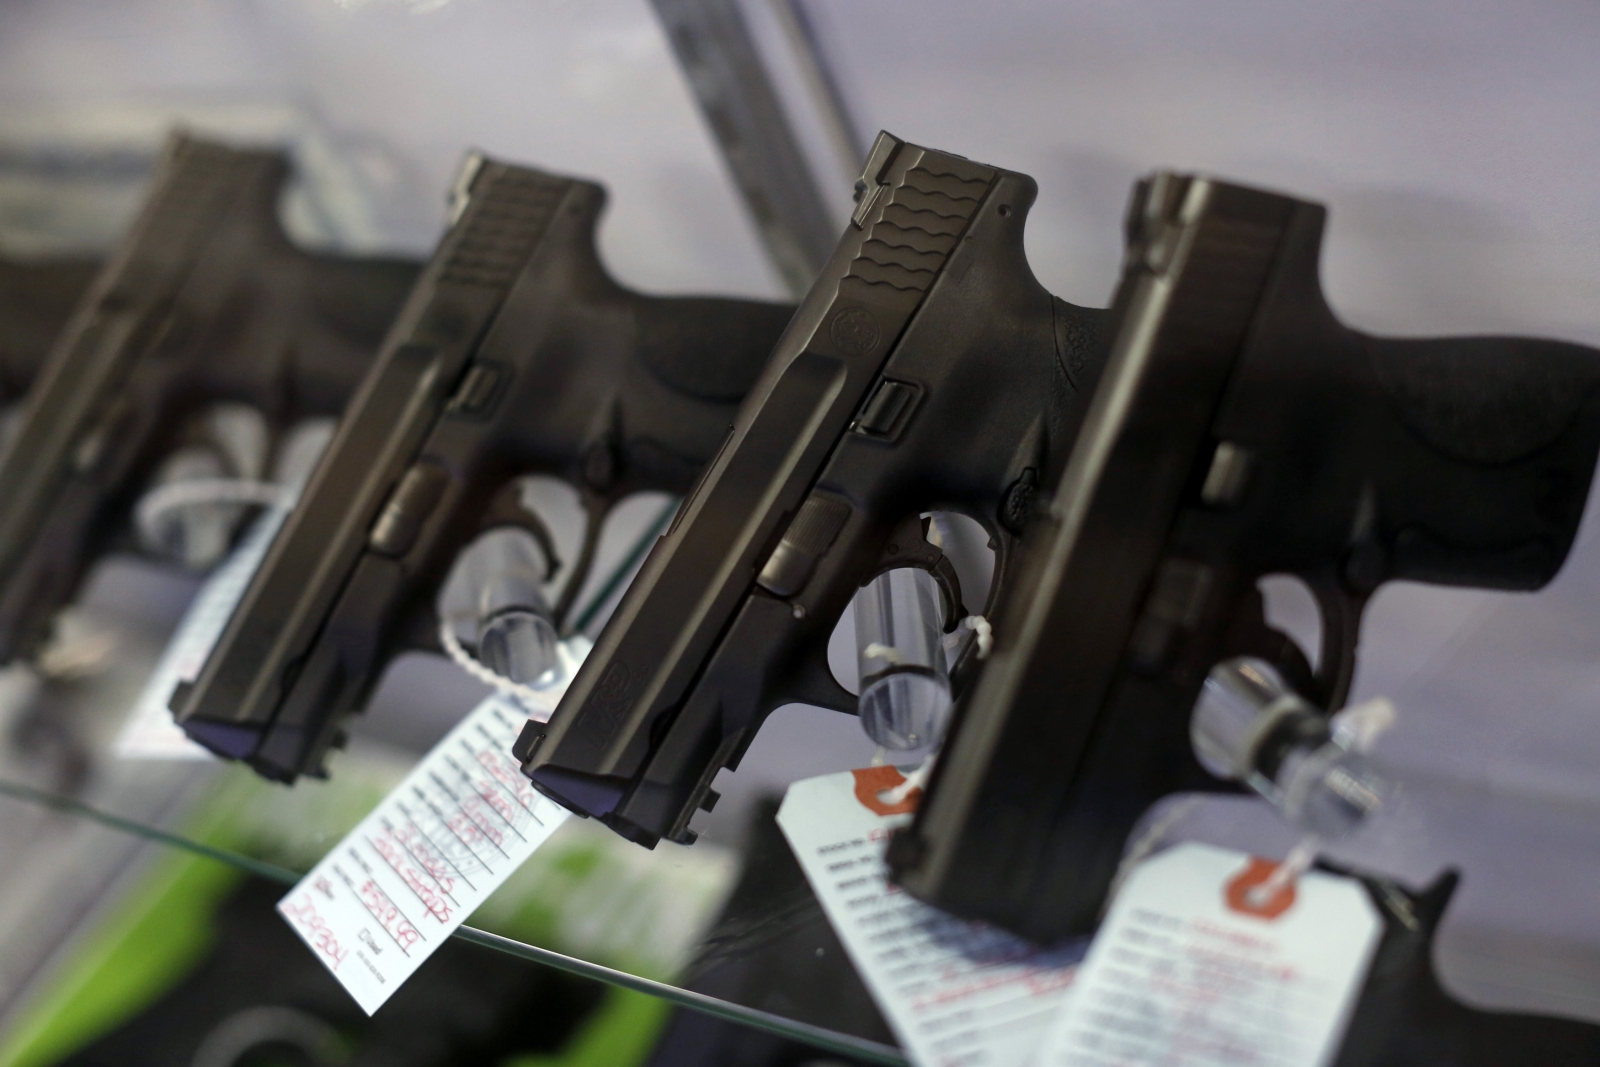 Handguns are seen for sale in a display case at Metro Shooting Supplies in Bridgeton, Missouri